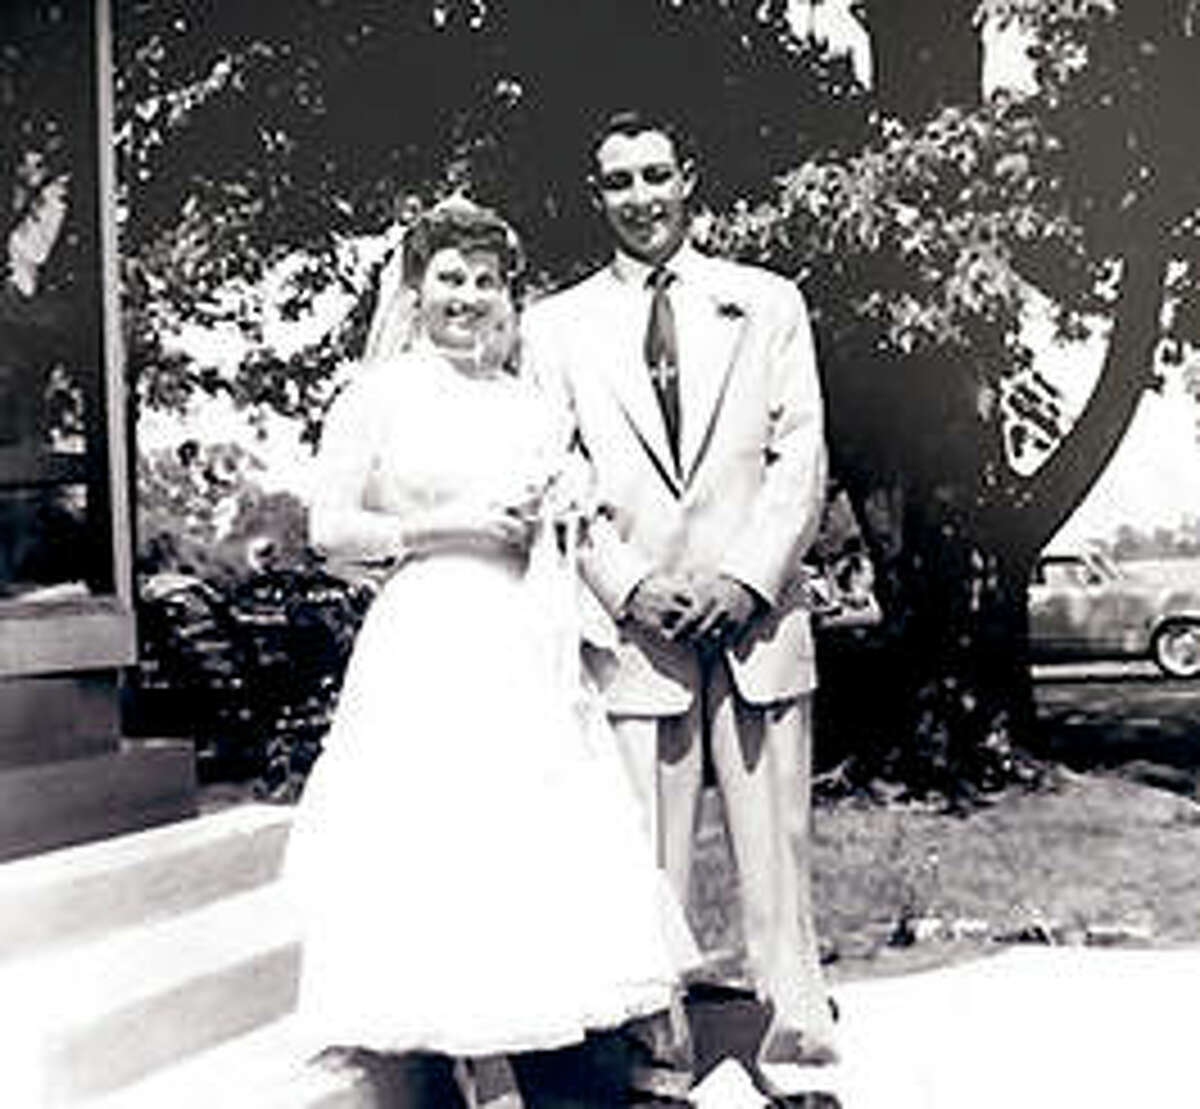 Gale and Bonnie Waltrip have wedding photos taken July 4, 1954.